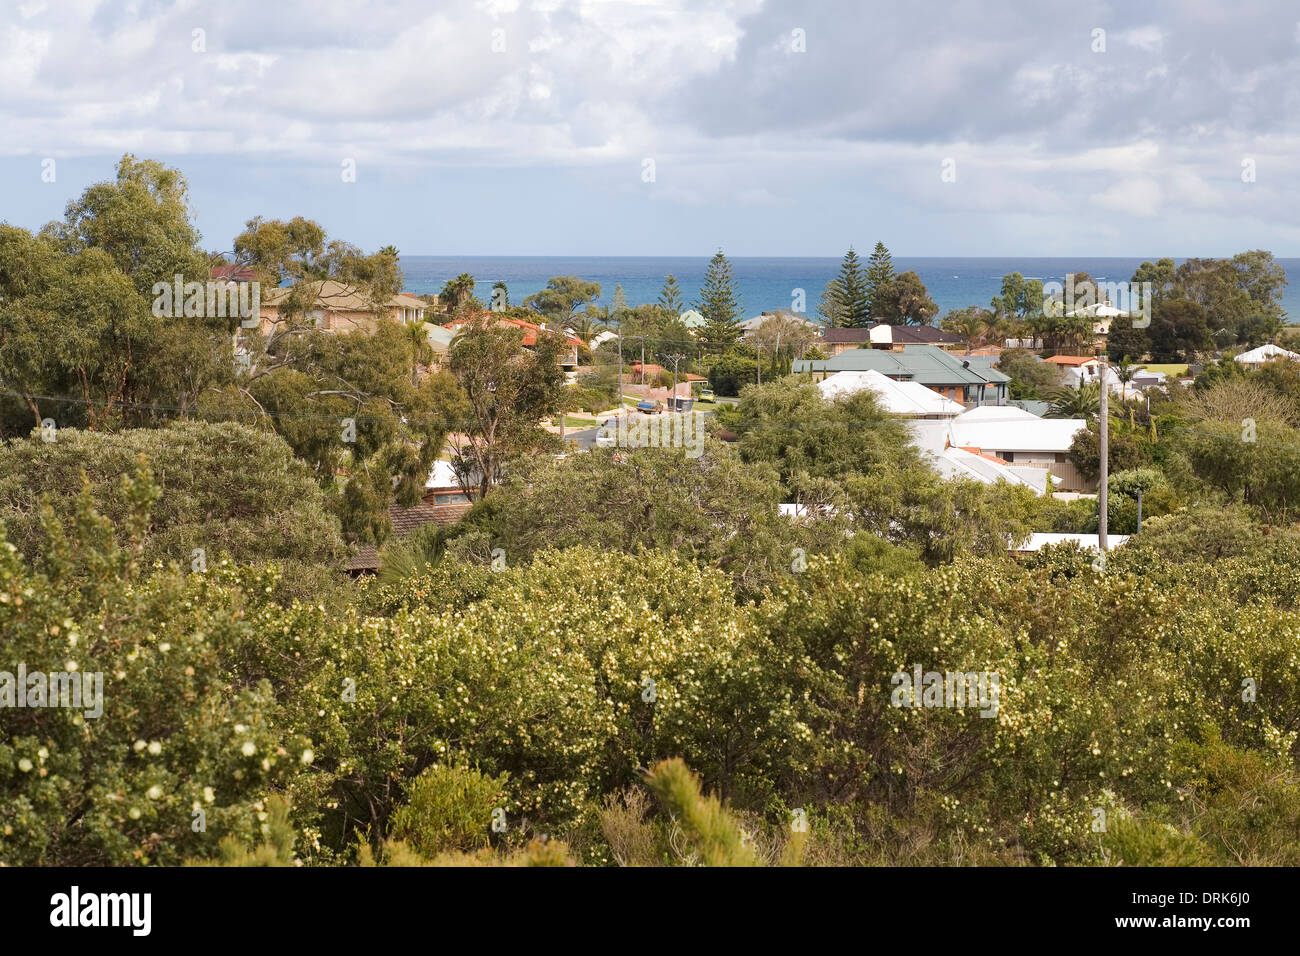 Bushland, the northern coastal suburb of Hillaries and the Indian Ocean, Perth. Western Australia - Stock Image